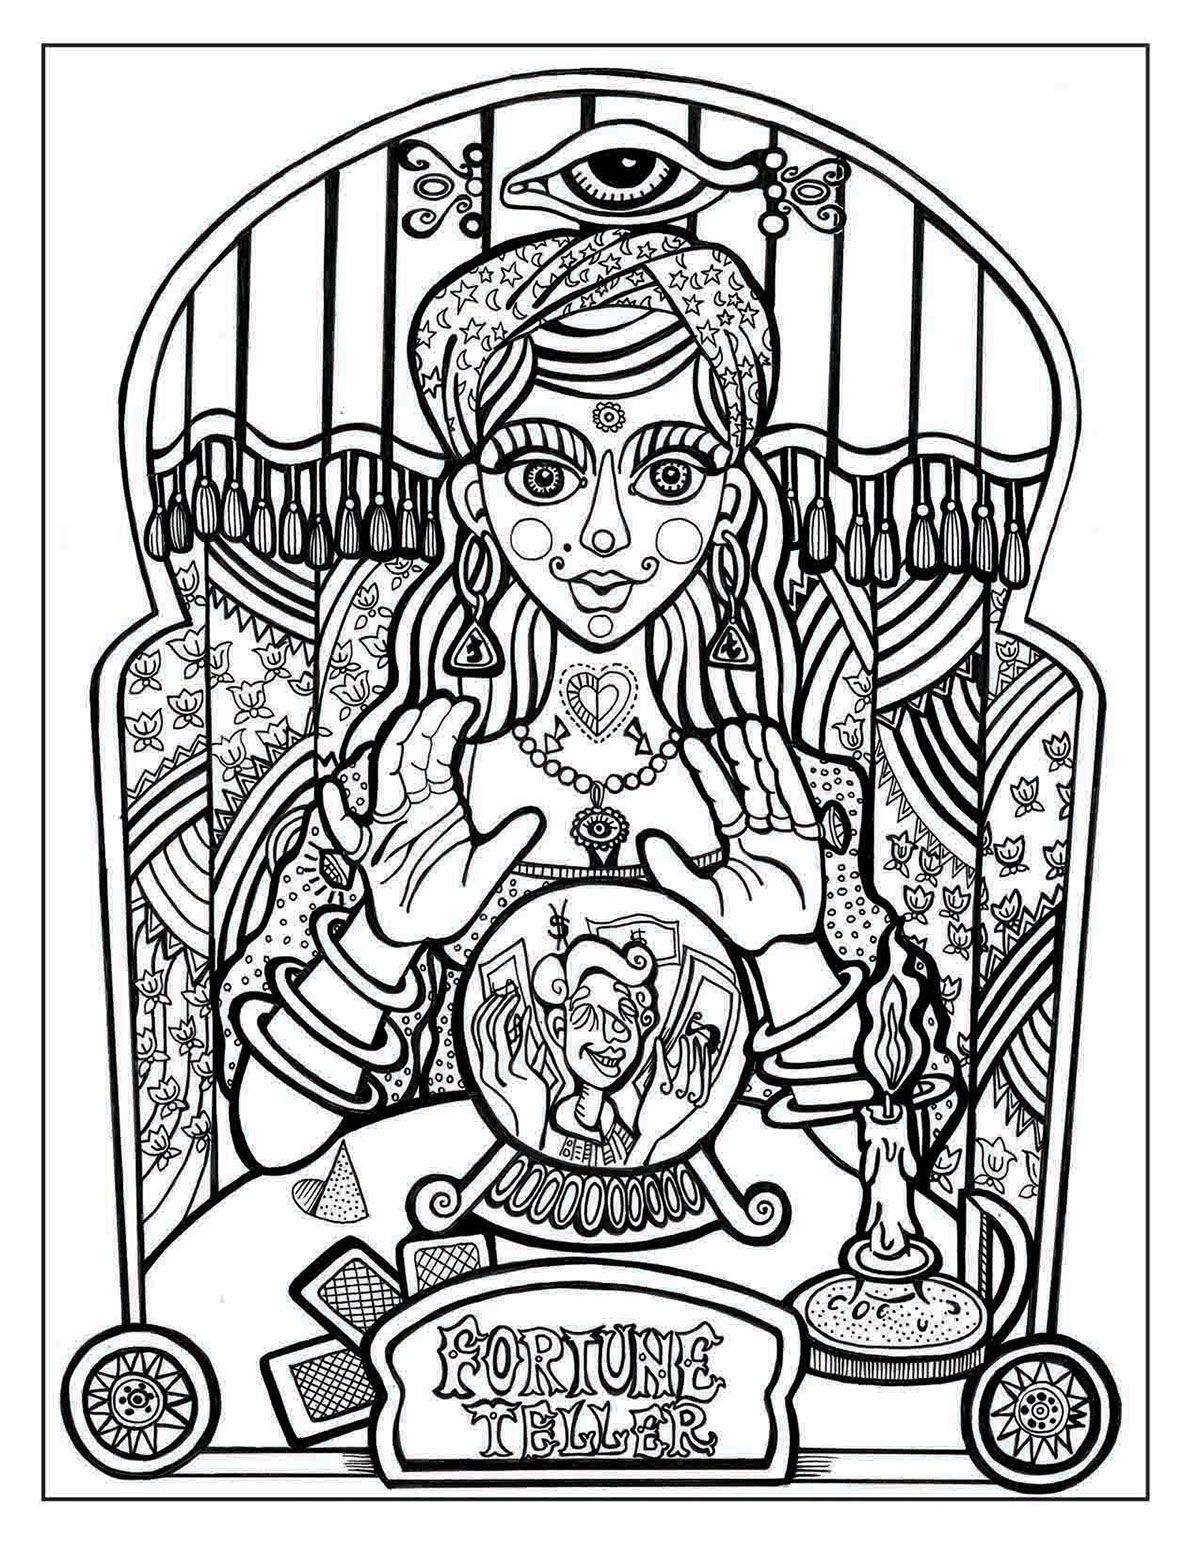 Fortune Teller Coloring Pages